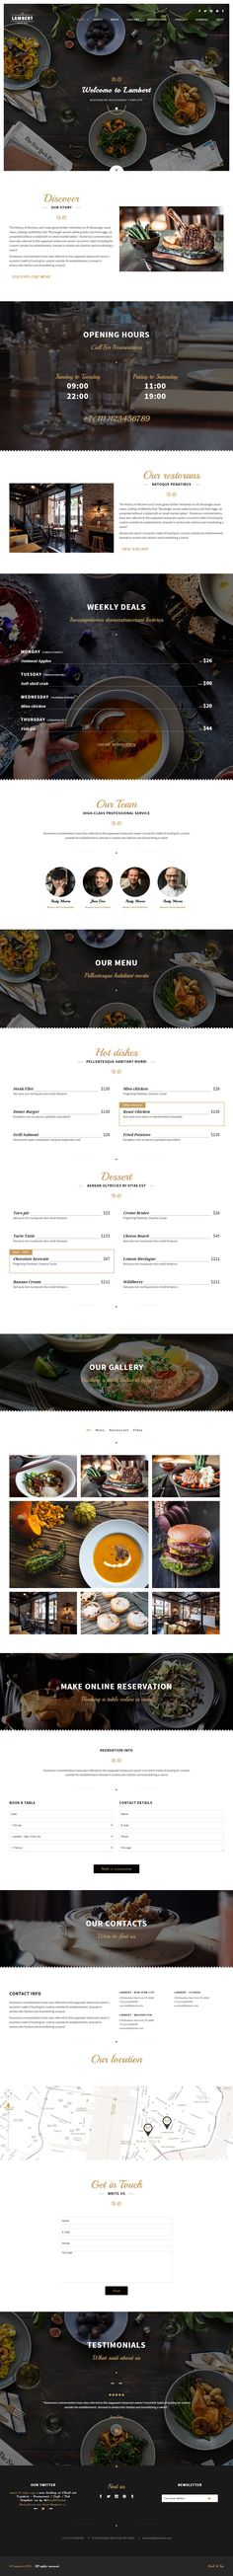 Lambert is Premium Responsive Retina Parallax Restaurant HTML5 template. Bootstrap 3. One Page. Google Map. Video Background. #Parallax #Restaurant #VideoBackground Test free demo at: http://www.responsivemiracle.com/cms/lambert-premium-responsive-restaurant-cafe-pub-html5-template/